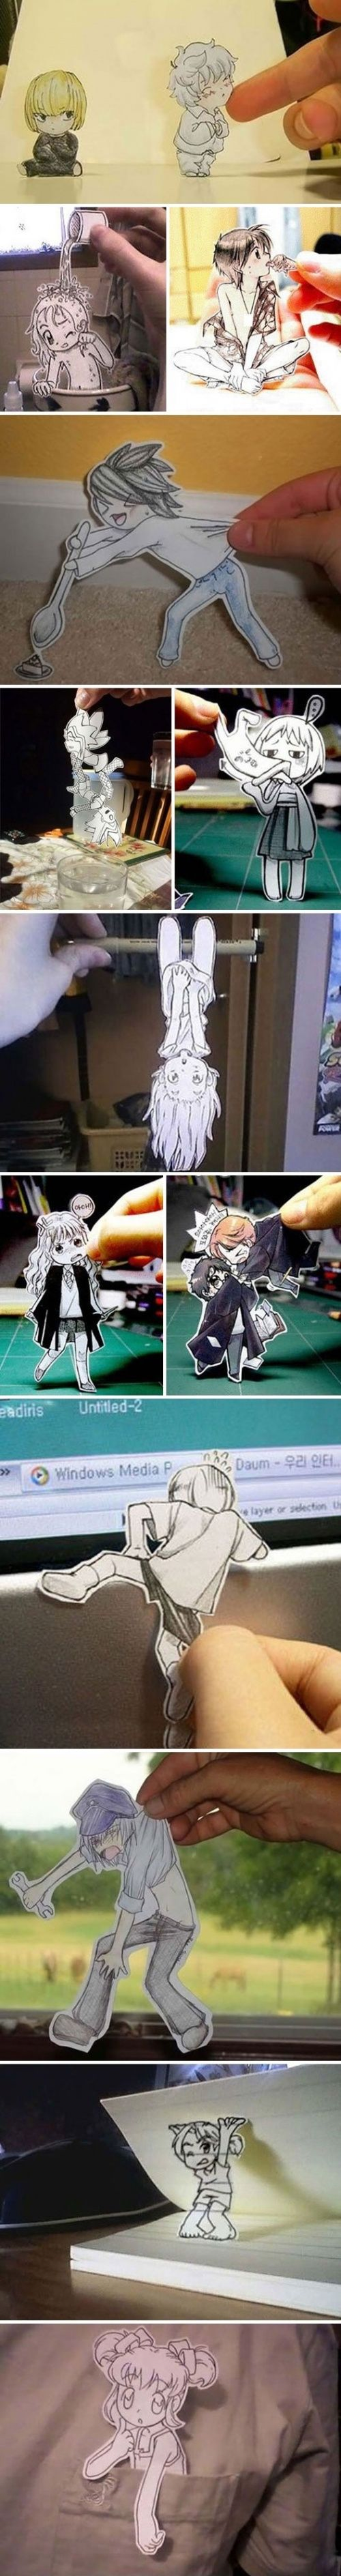 Anime Cutouts - good idea for a teen program.  Take pics of them at the library.   ~I really want to do this!